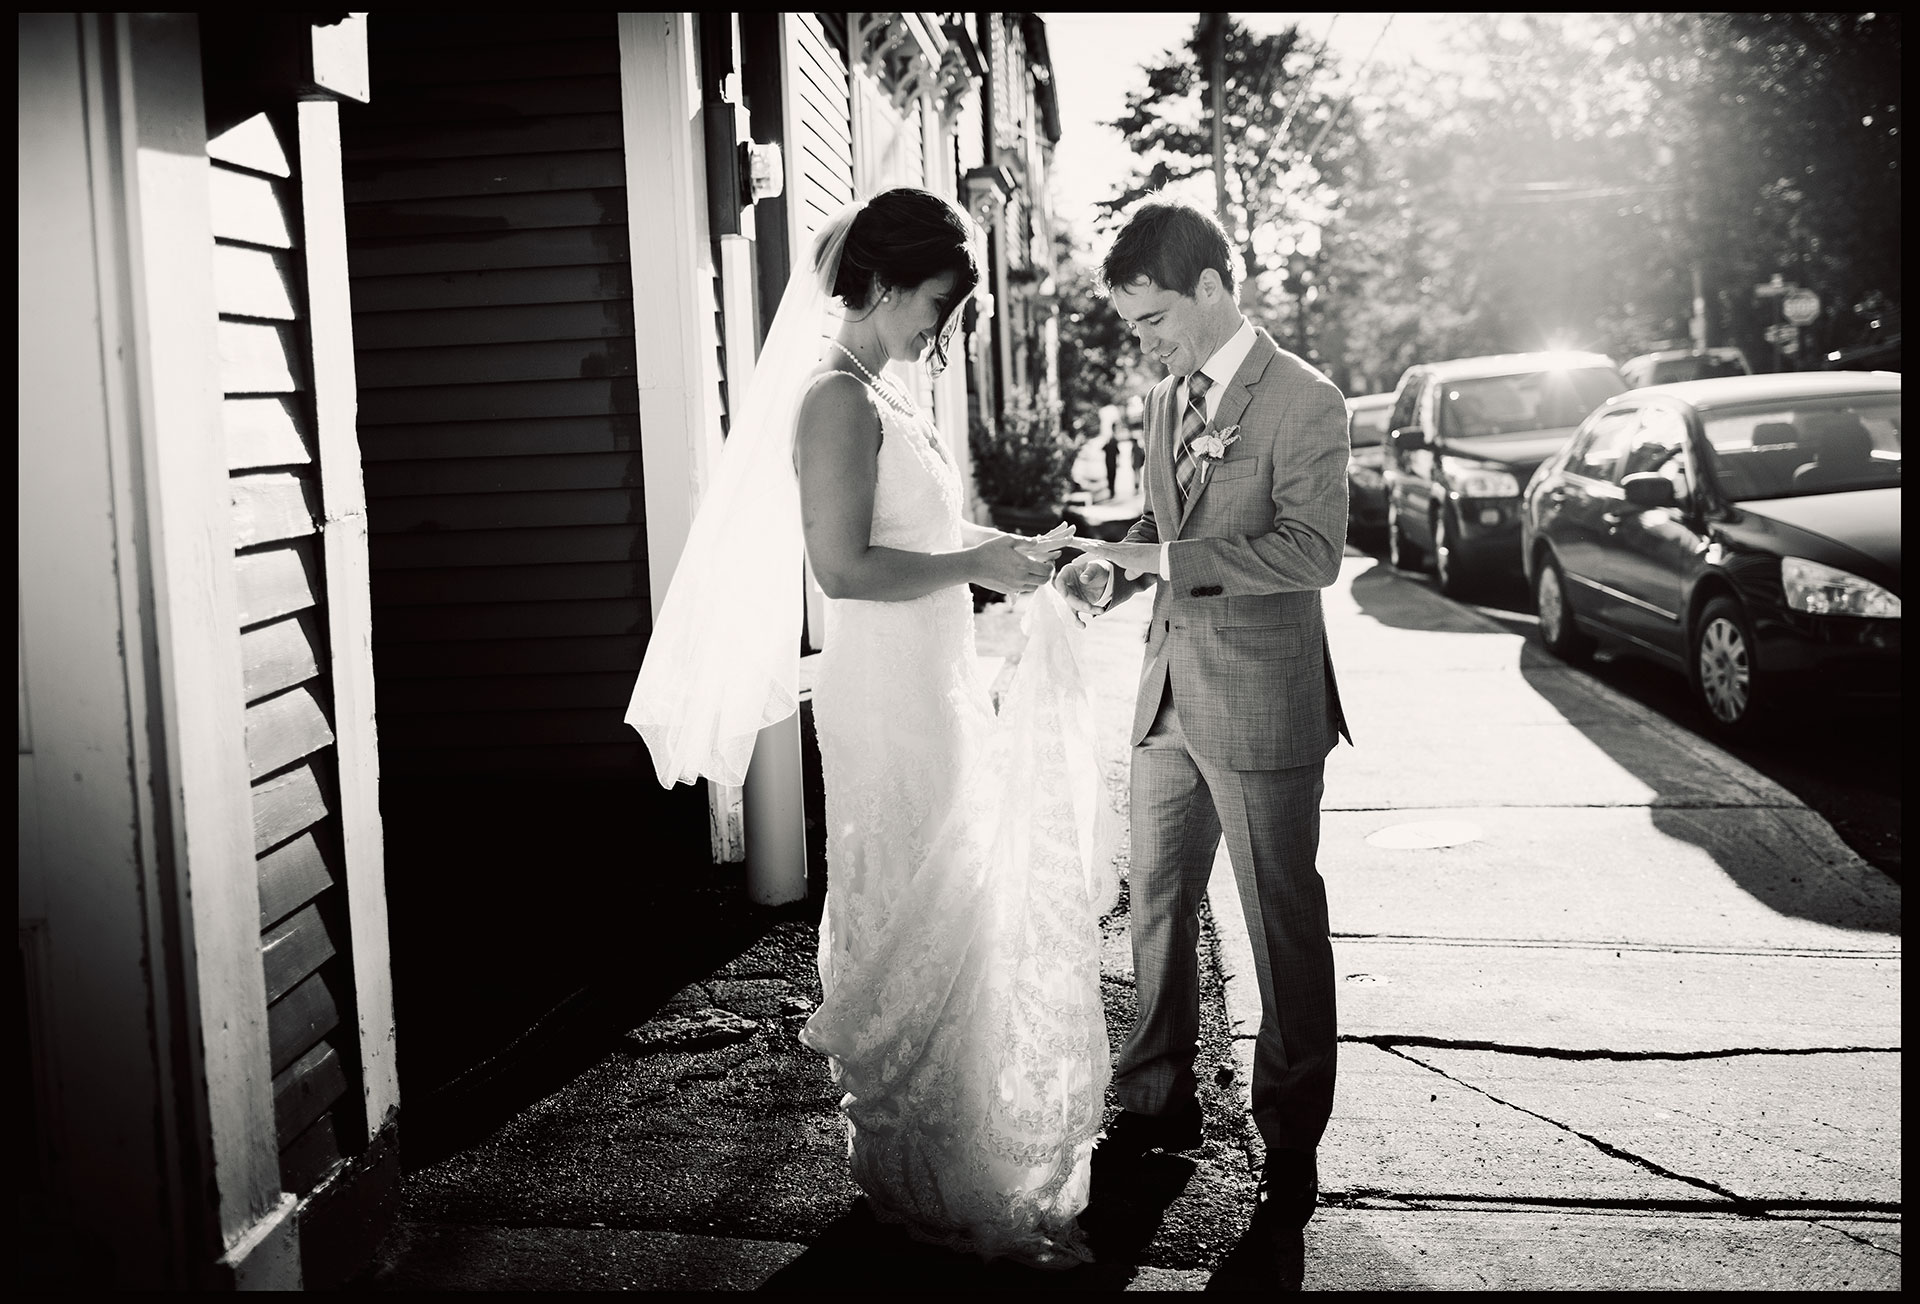 brie_doug_wedding-181a